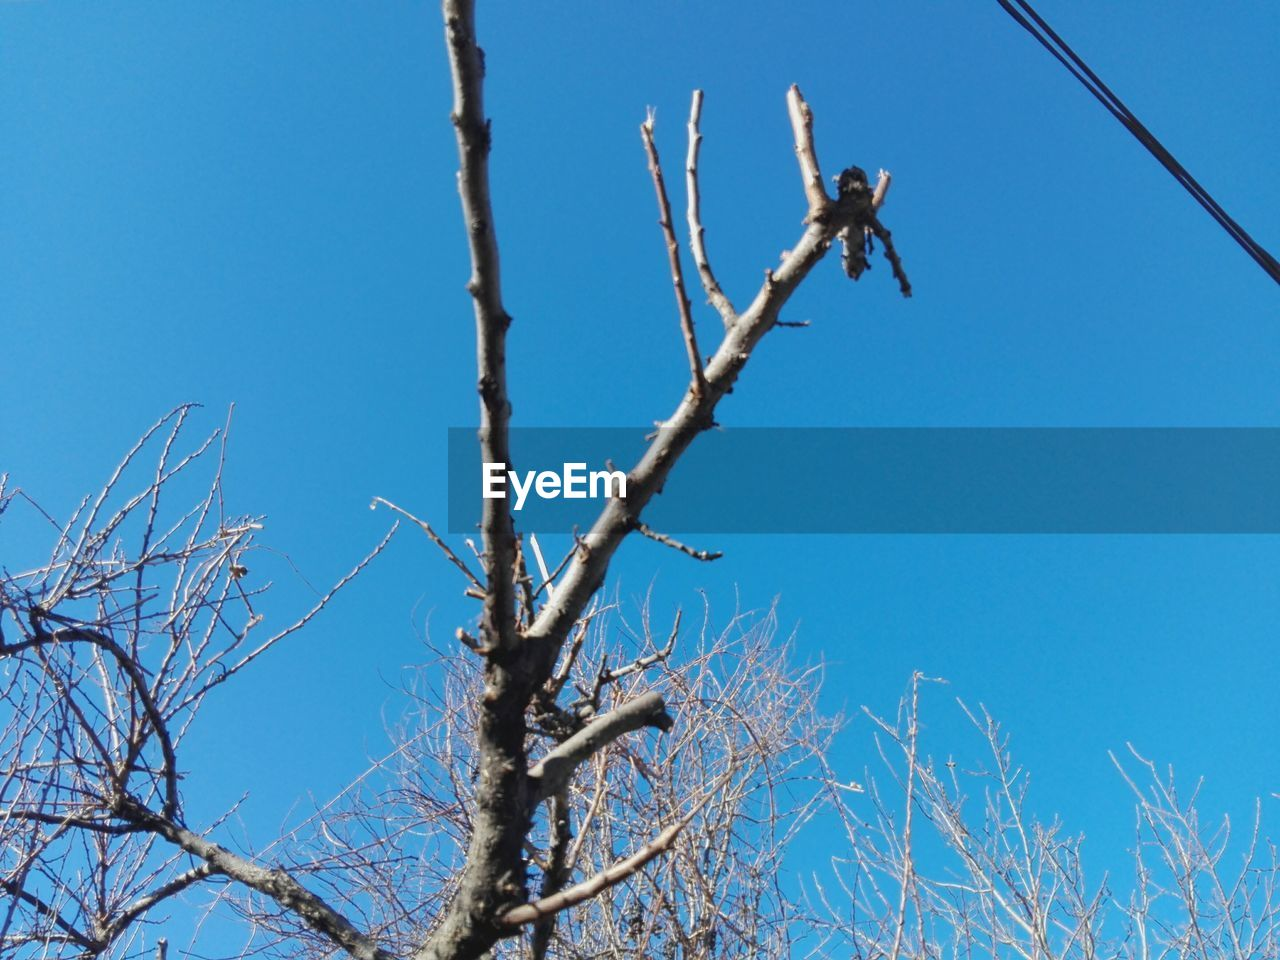 clear sky, low angle view, blue, branch, day, bare tree, animals in the wild, outdoors, nature, tree, perching, animal themes, no people, one animal, sky, full length, beauty in nature, bird